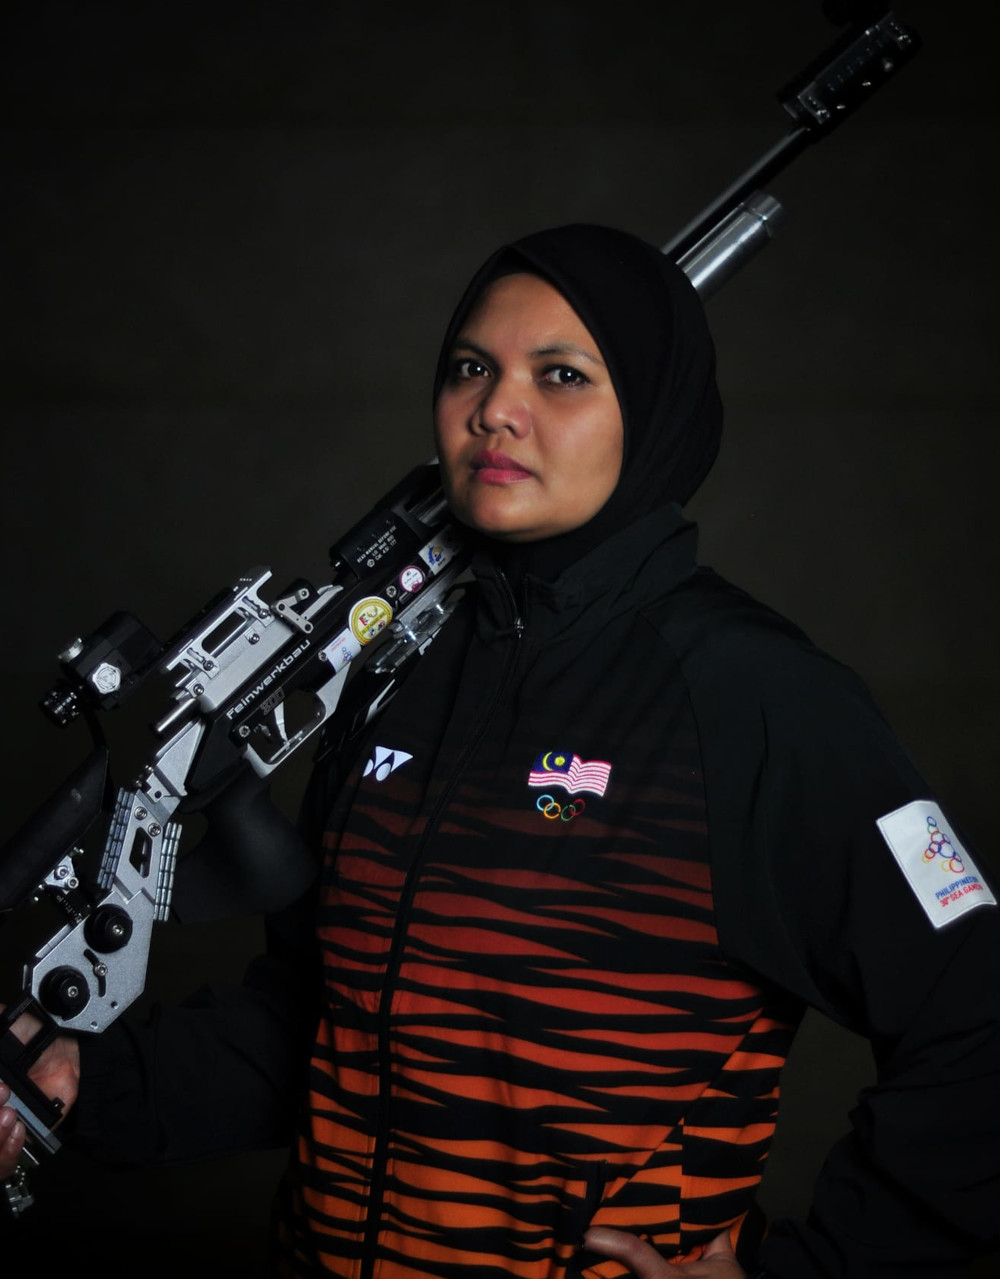 National shooting coach Mohd Yusri Jusoh does not rule out the possibility that something special could be achieved by Nur Suryani Mohamed Taibi at the Asaka Shooting Range on the day of the event, which is scheduled for July 31. — Picture from Facebook/Nur Suryani Mohamed Taibi